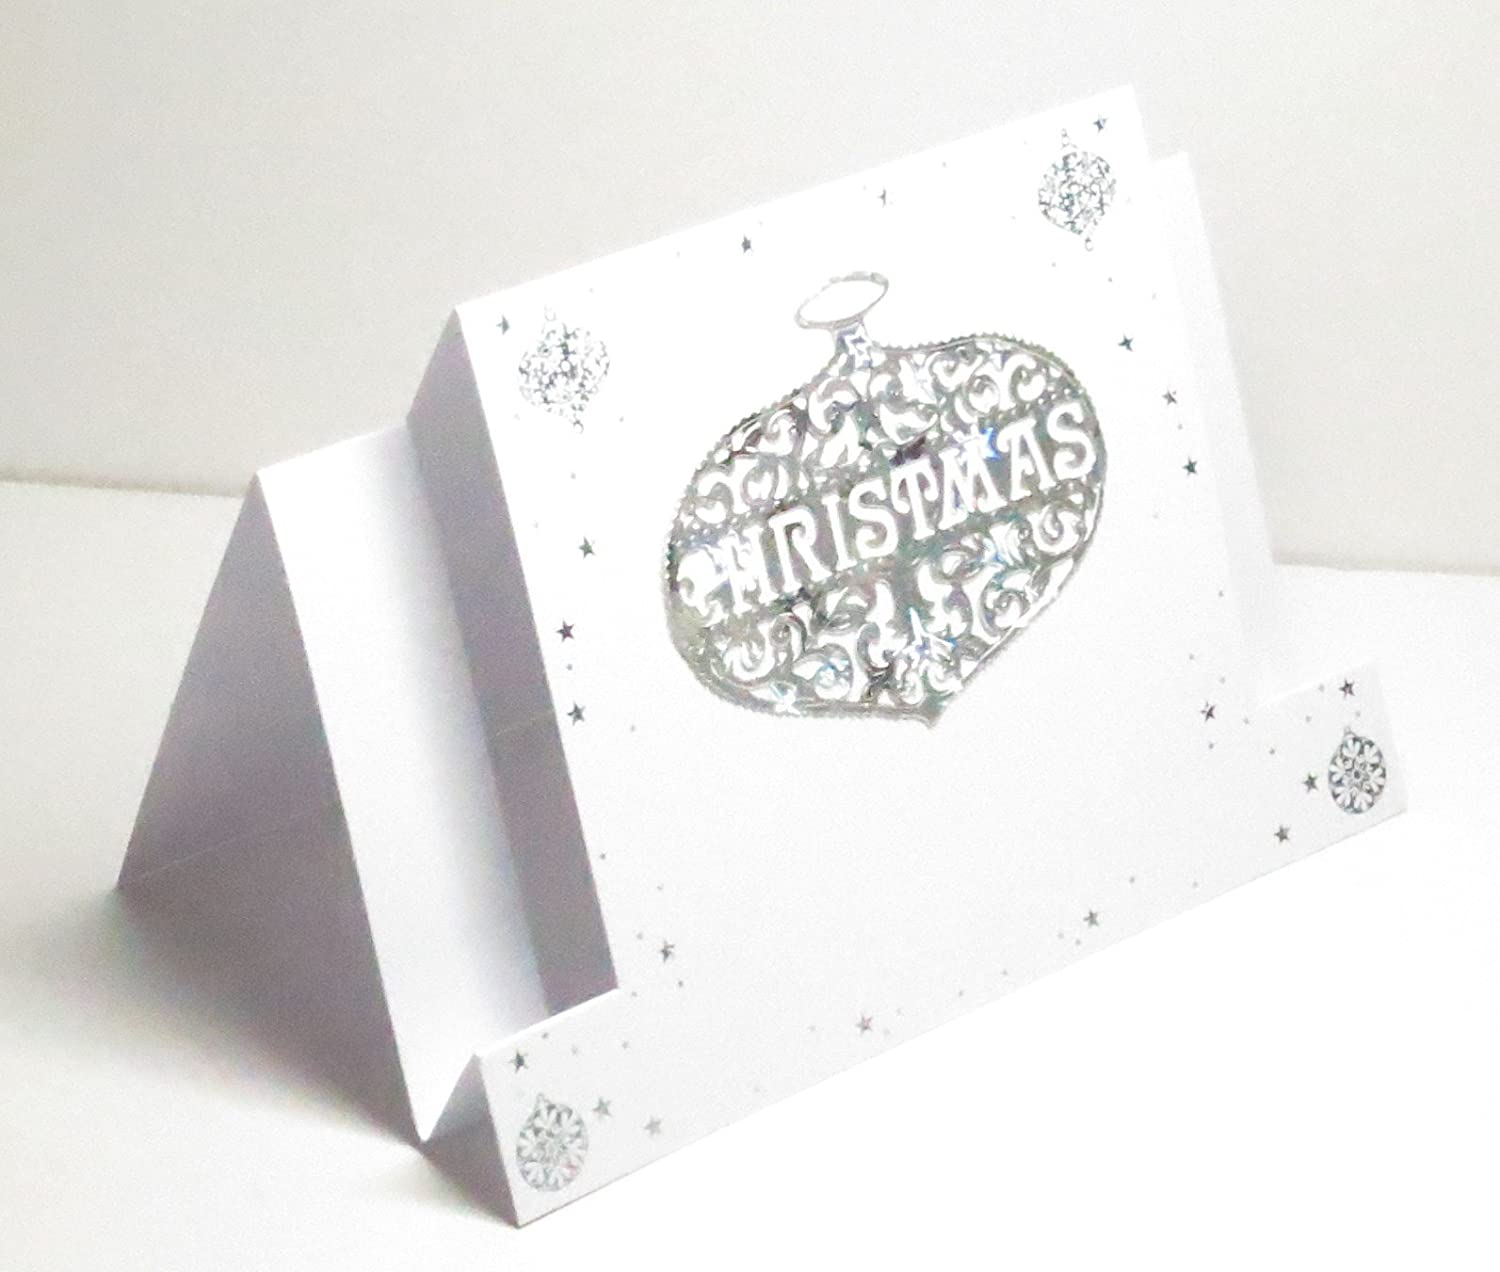 Limited Edition Blank Inside 1 in stock Handmade Holographic Silver Stars /& White Christmas Bauble//Ornament Centre Stepper Greeting Card